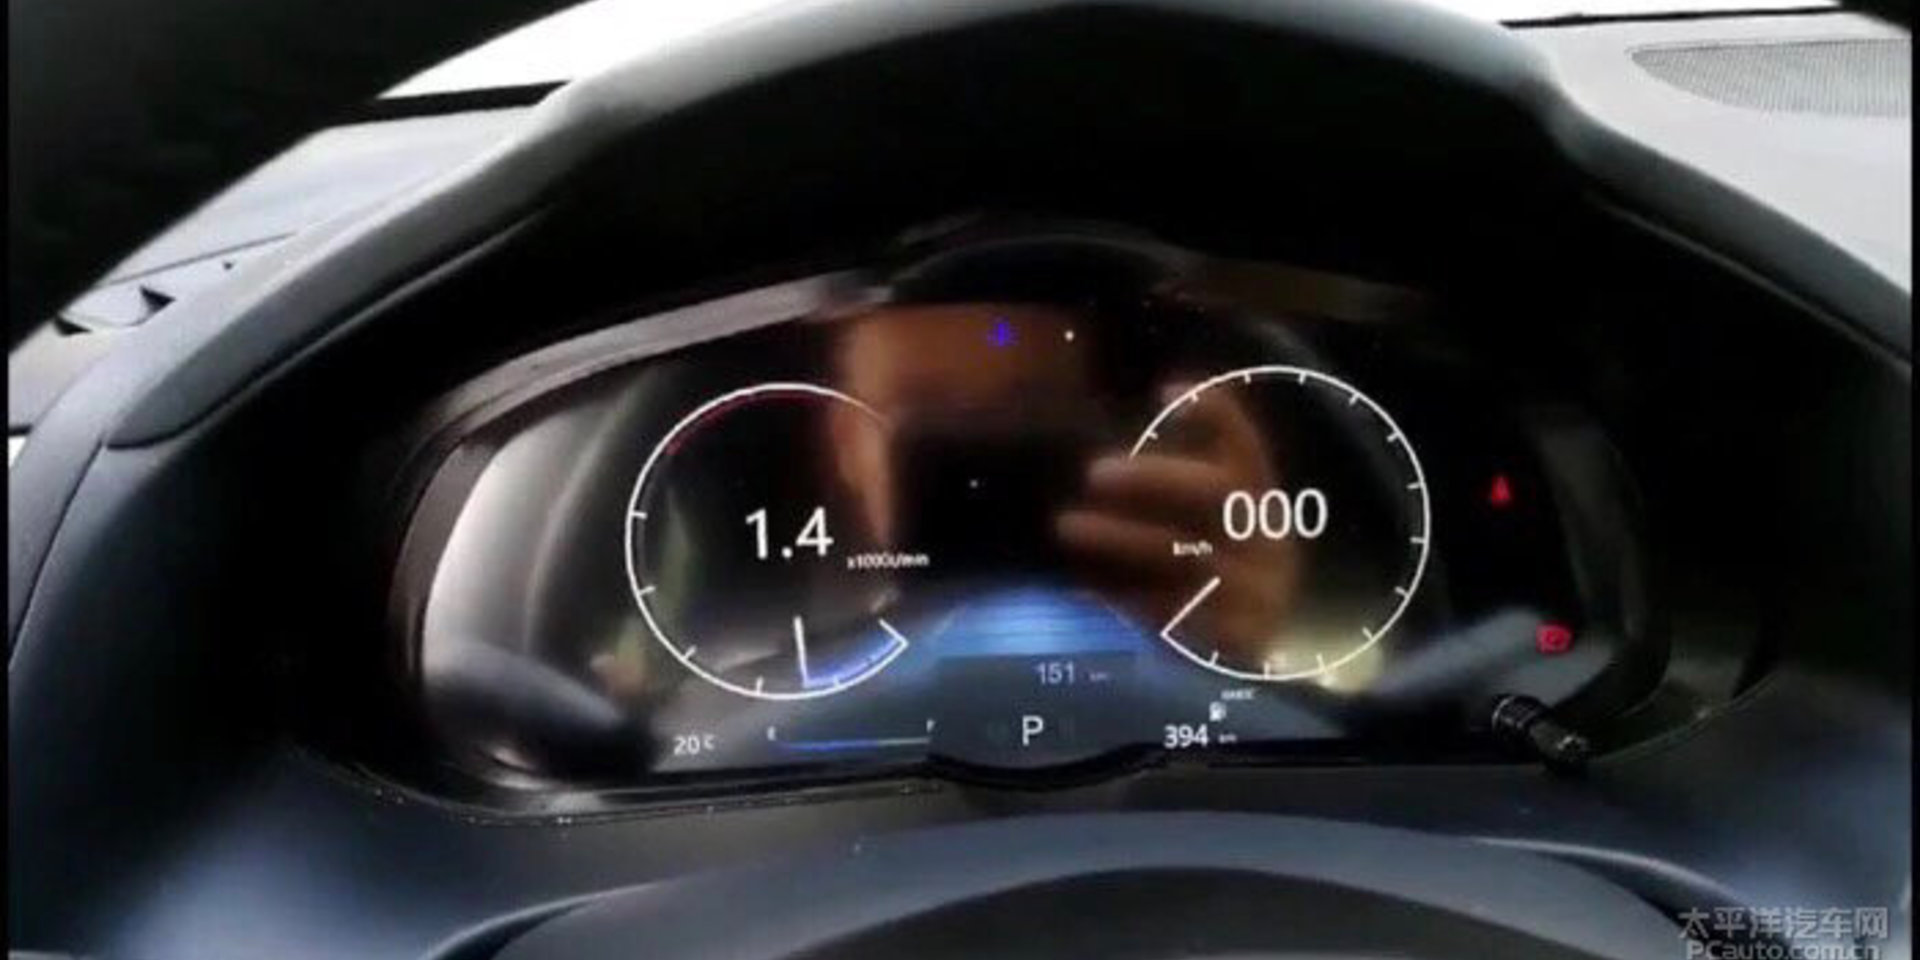 2019 Mazda3 Digital Instrument Cluster Looks Alright In